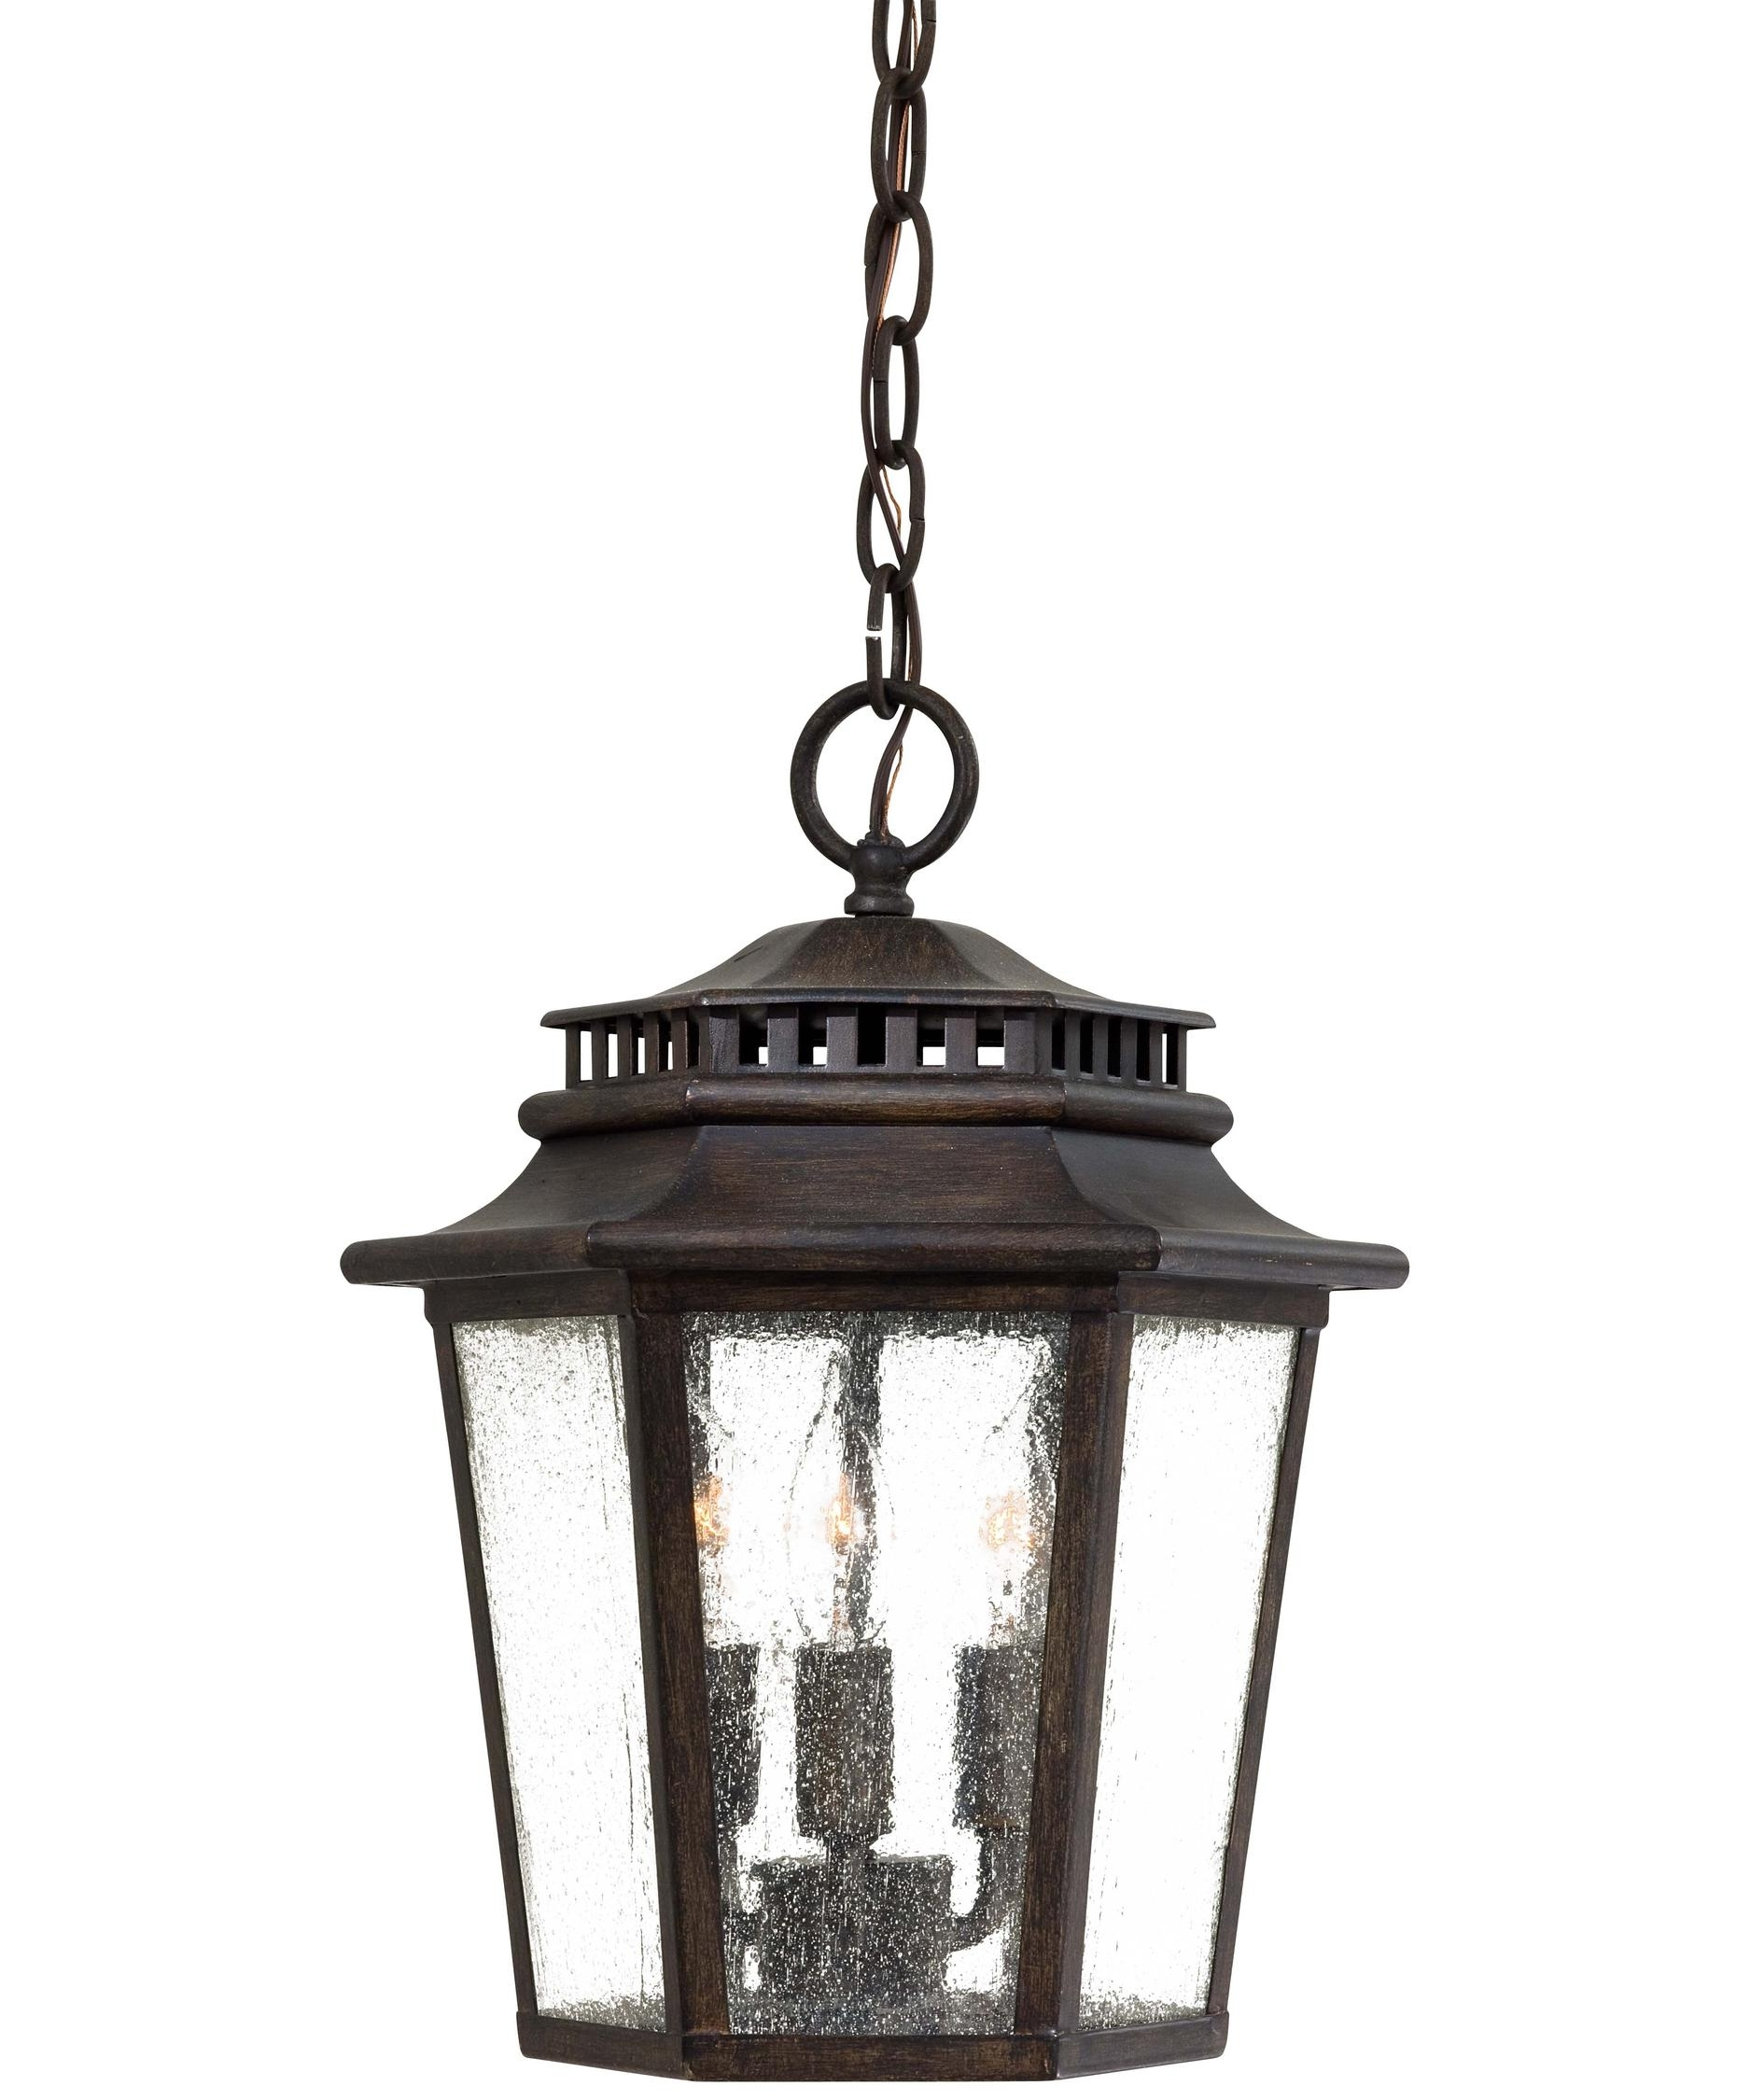 Minka Lavery 8274 Wickford Bay 11 Inch Wide 3 Light Outdoor Hanging Inside Outdoor Iron Hanging Lights (#6 of 10)